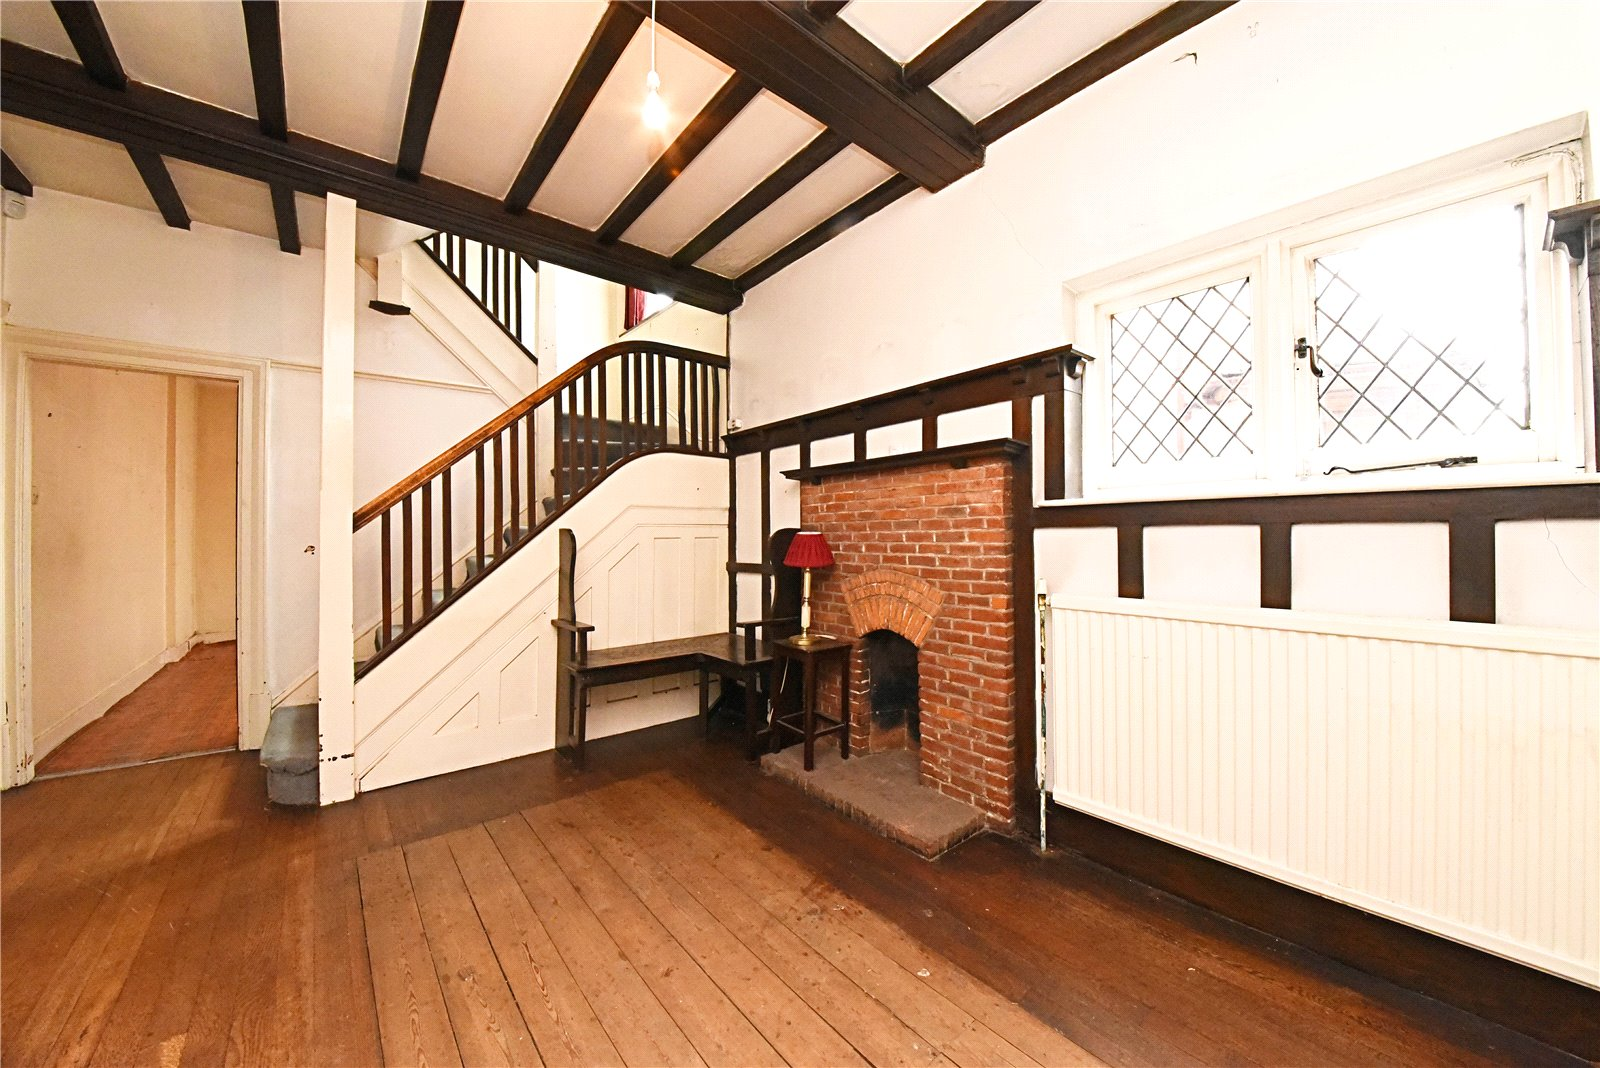 6 bed house for sale in Whetstone, N20 0NN 5